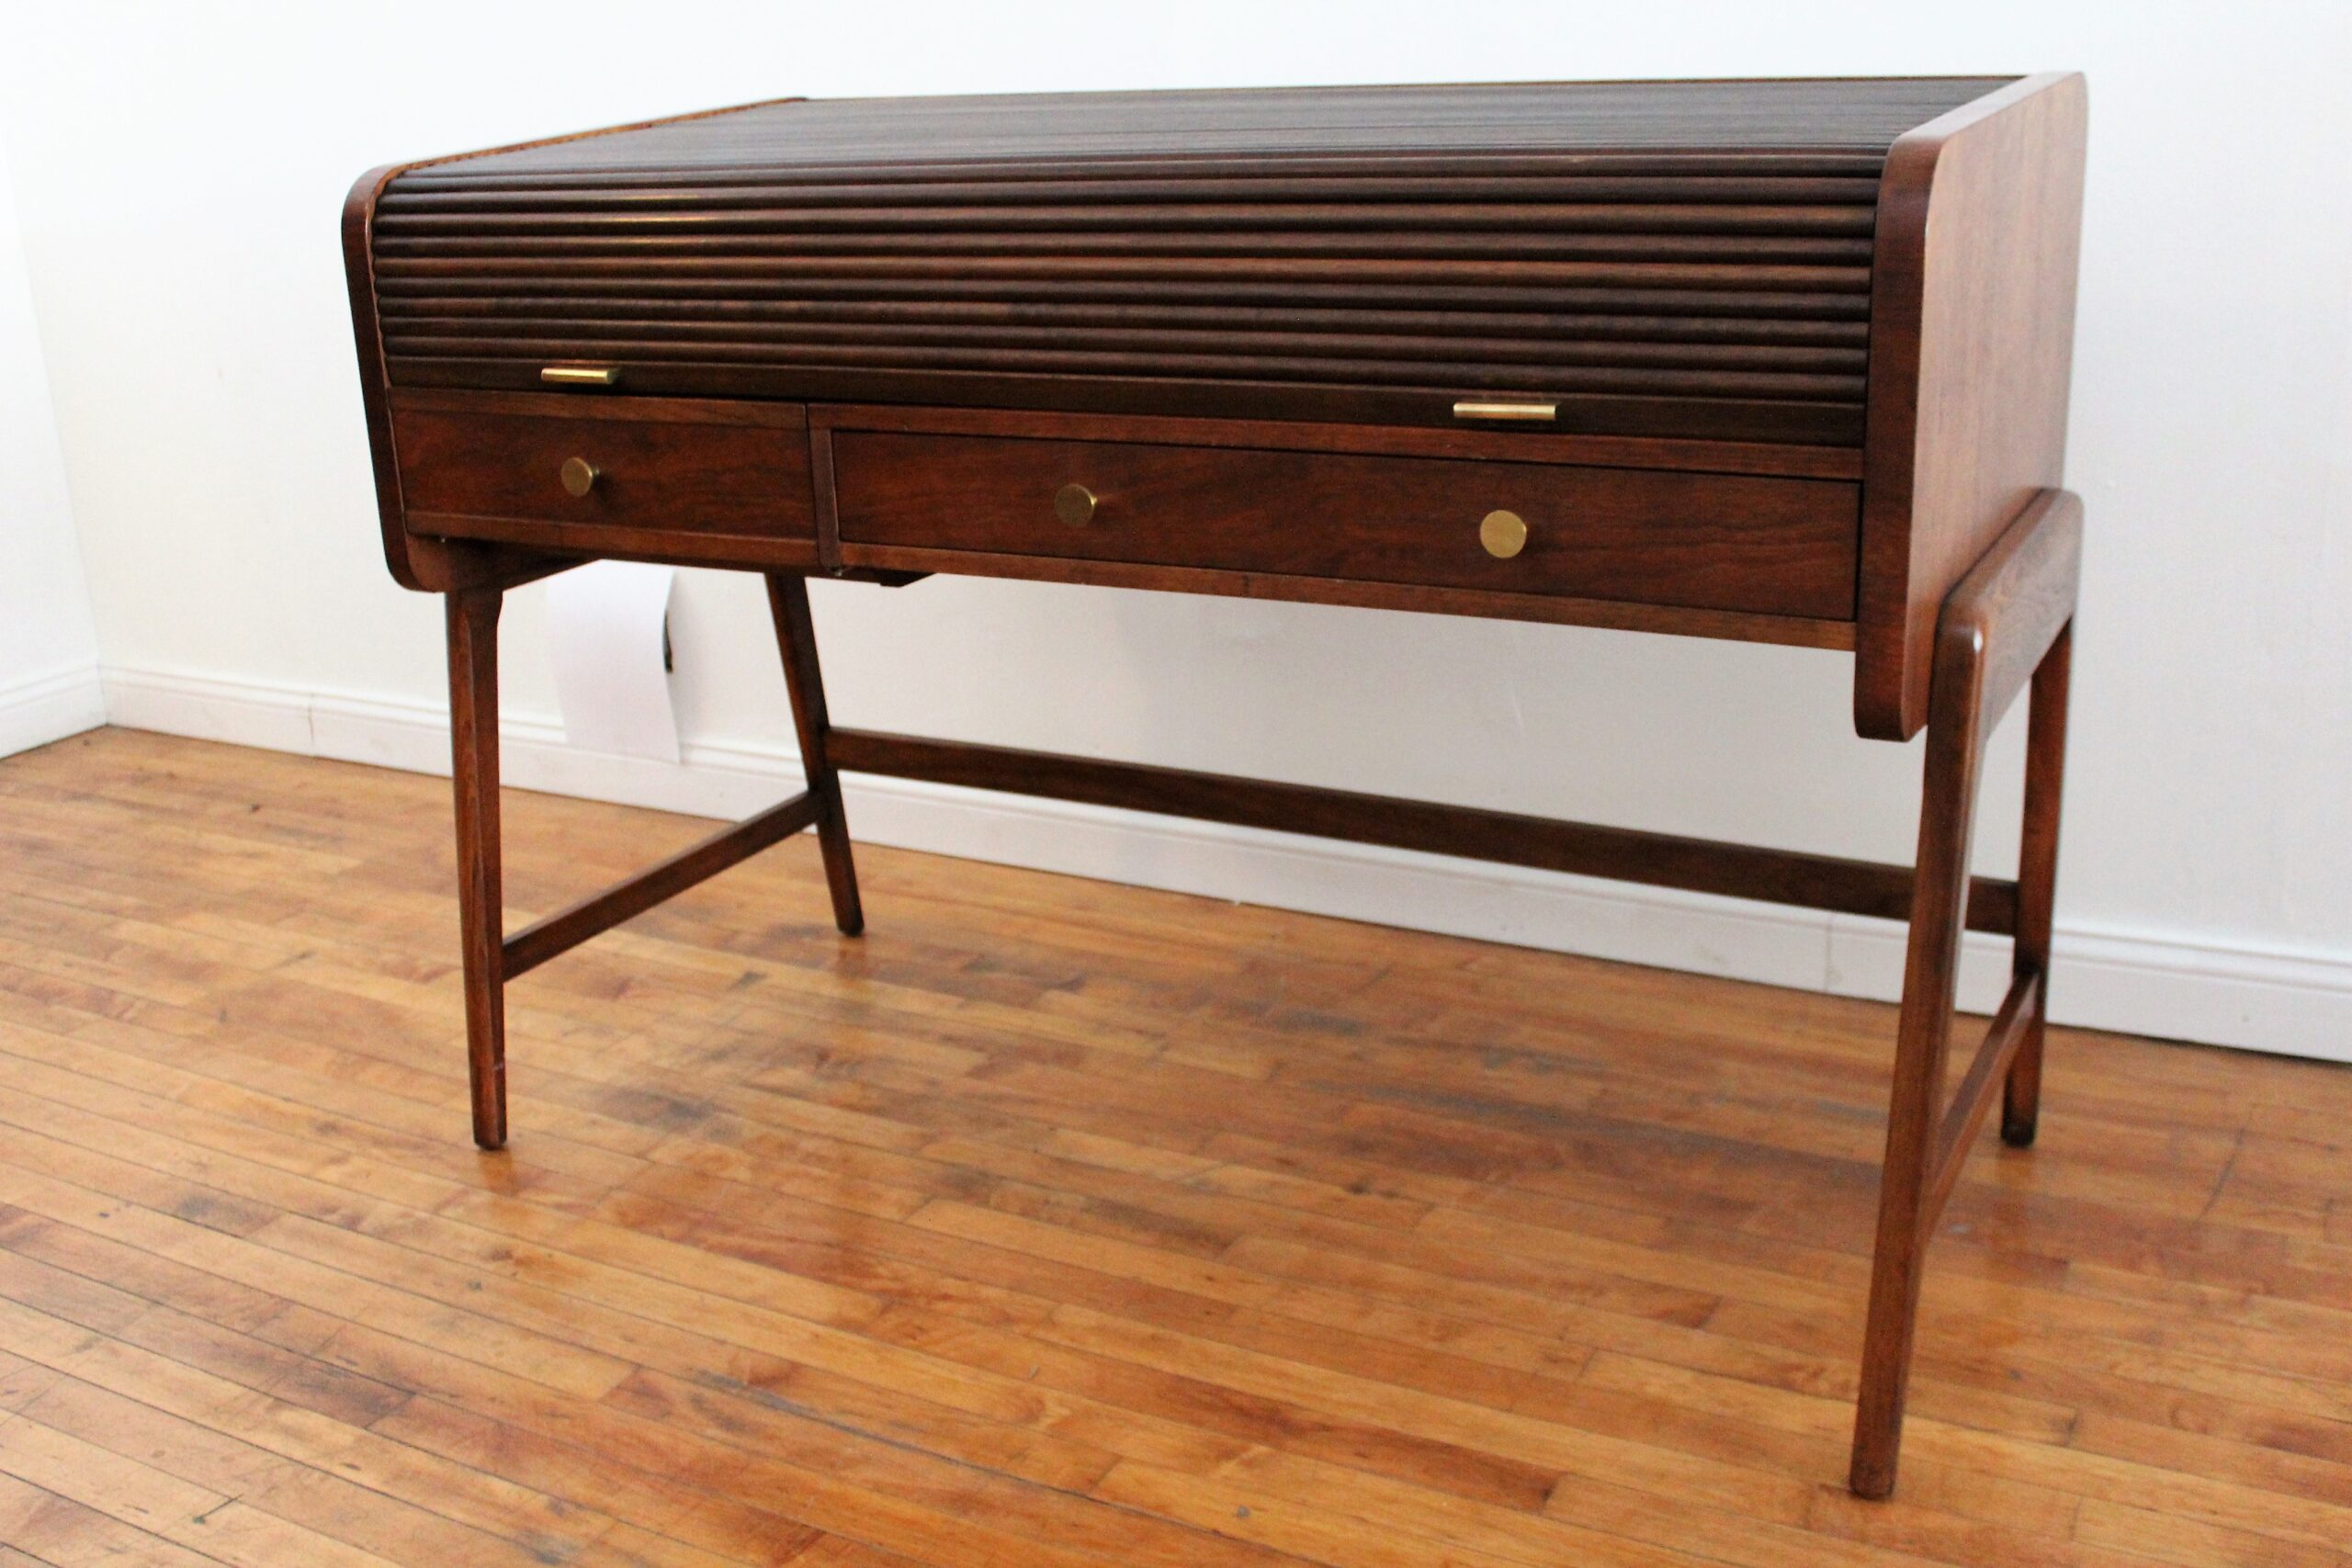 Sligh Lowry Vintage Mid Century Modern Walnut Roll Top Desk An Orange Moon Mid Century Modern Antiques Vintage Furniture Chicago